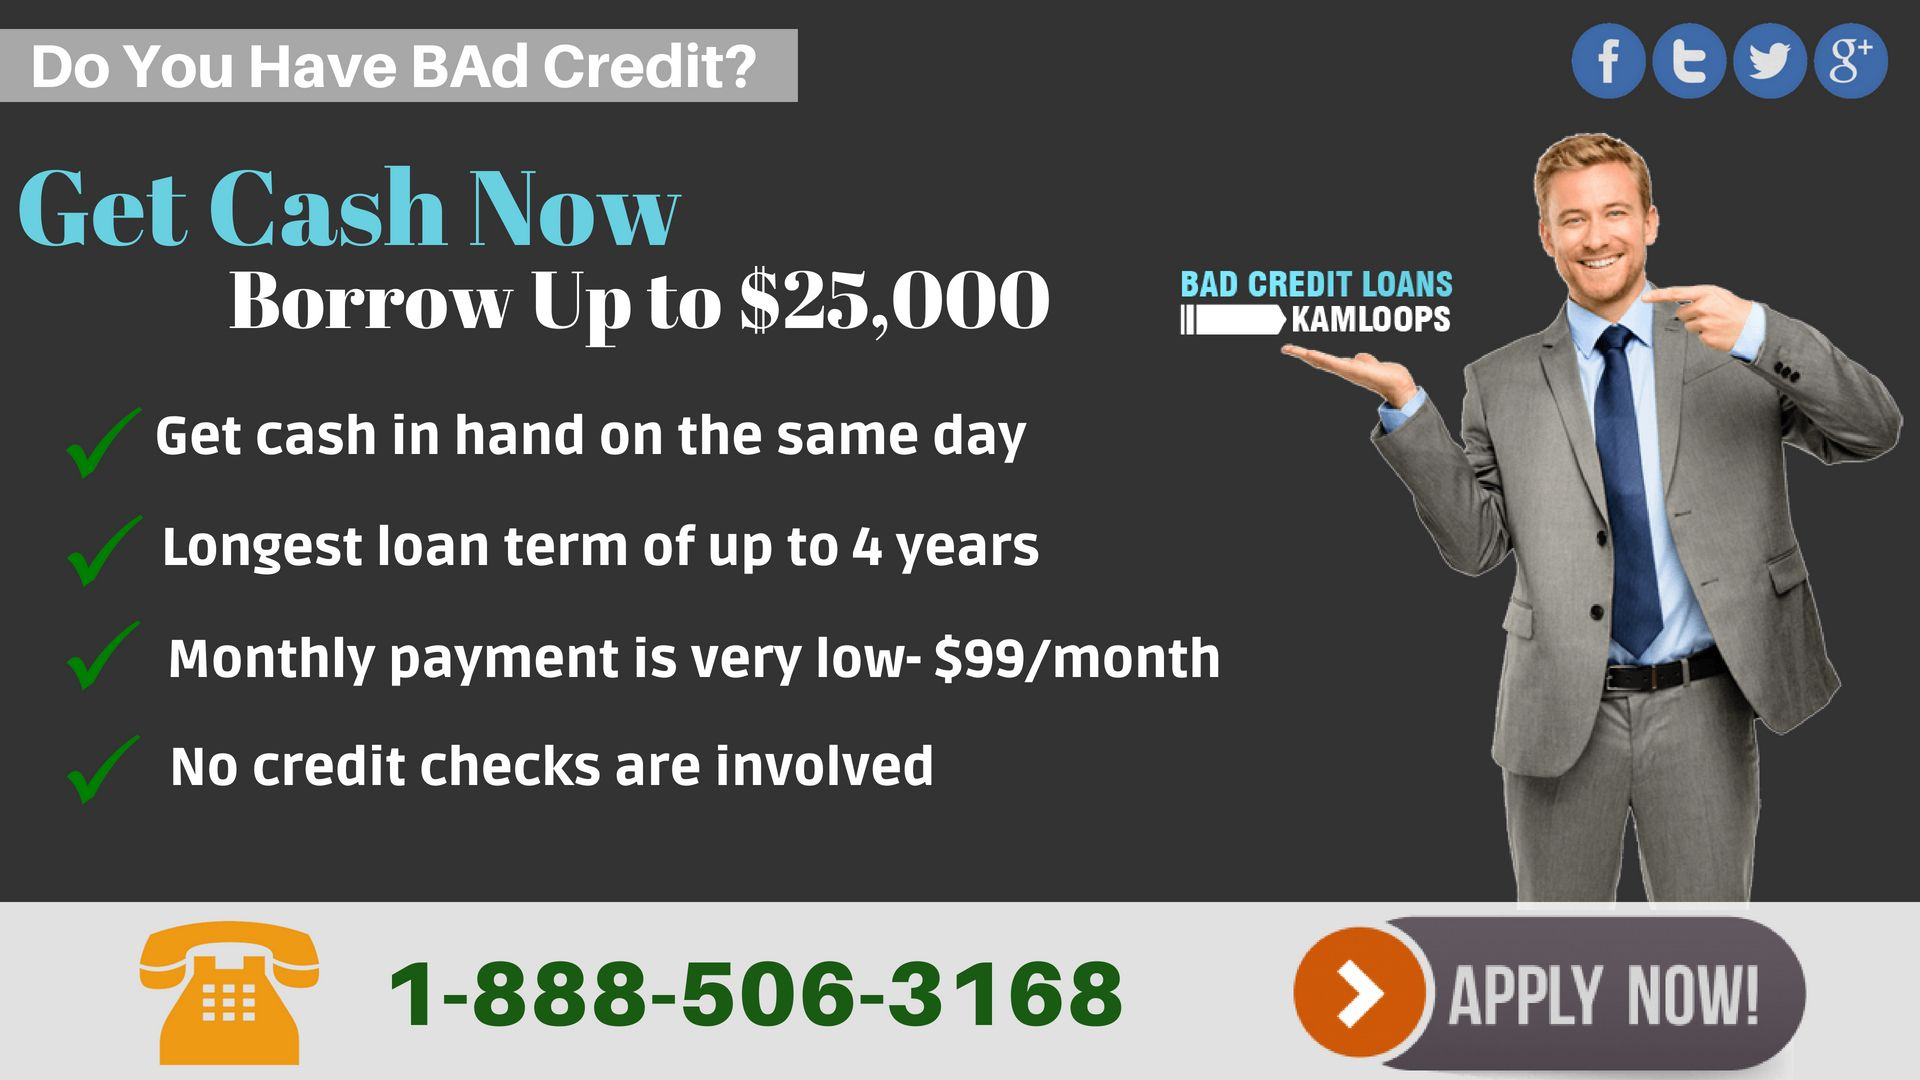 Bad Credit Loans Kamloops Is Offering Money Loans In Kamloops Where You Can Turn Your Vehicle Into Cash And Ke Loans For Bad Credit No Credit Loans Bad Credit